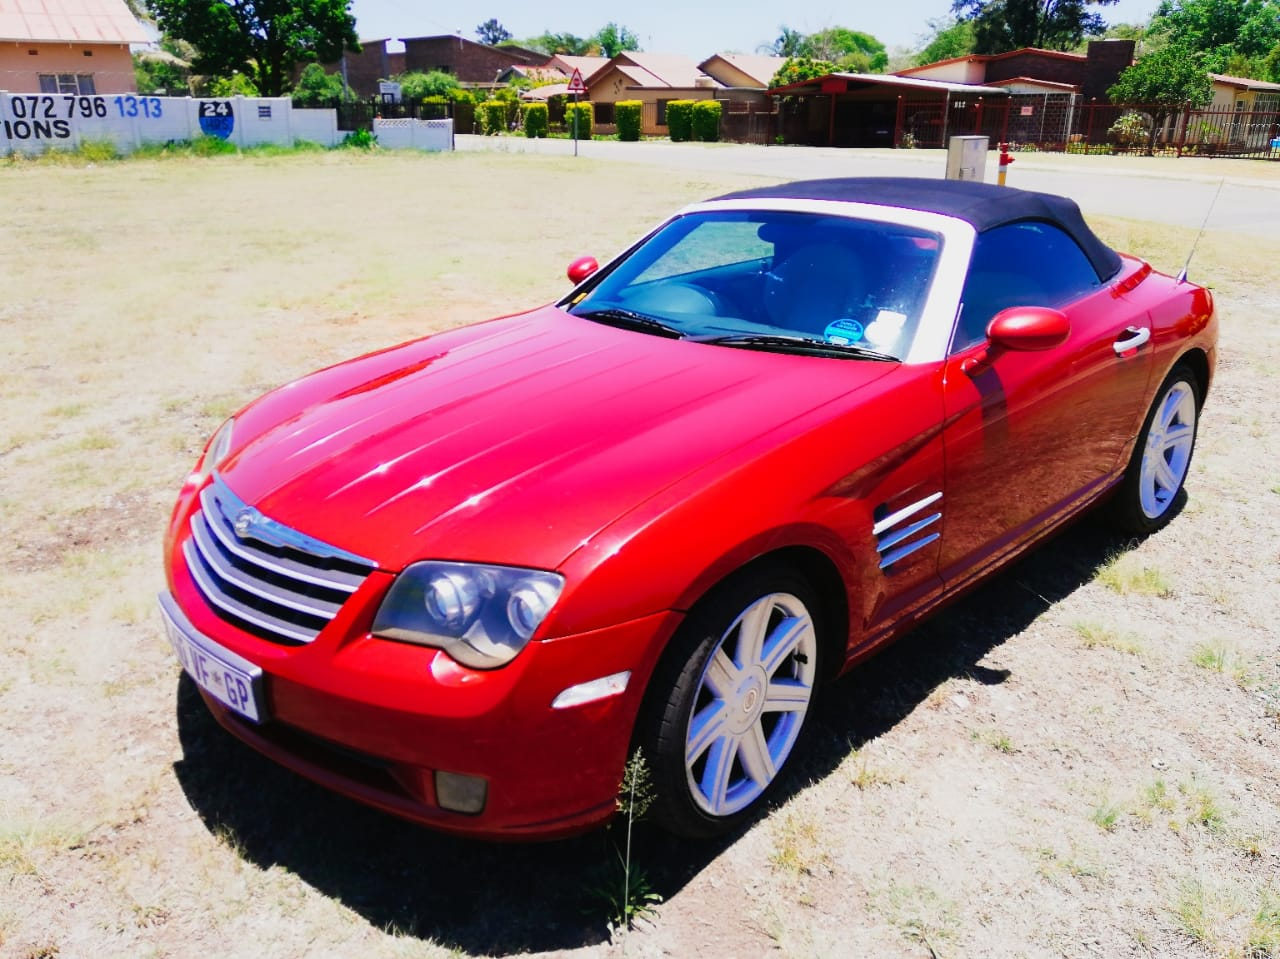 2006 Chrysler Crossfire 3 2 Coupe Junk Mail